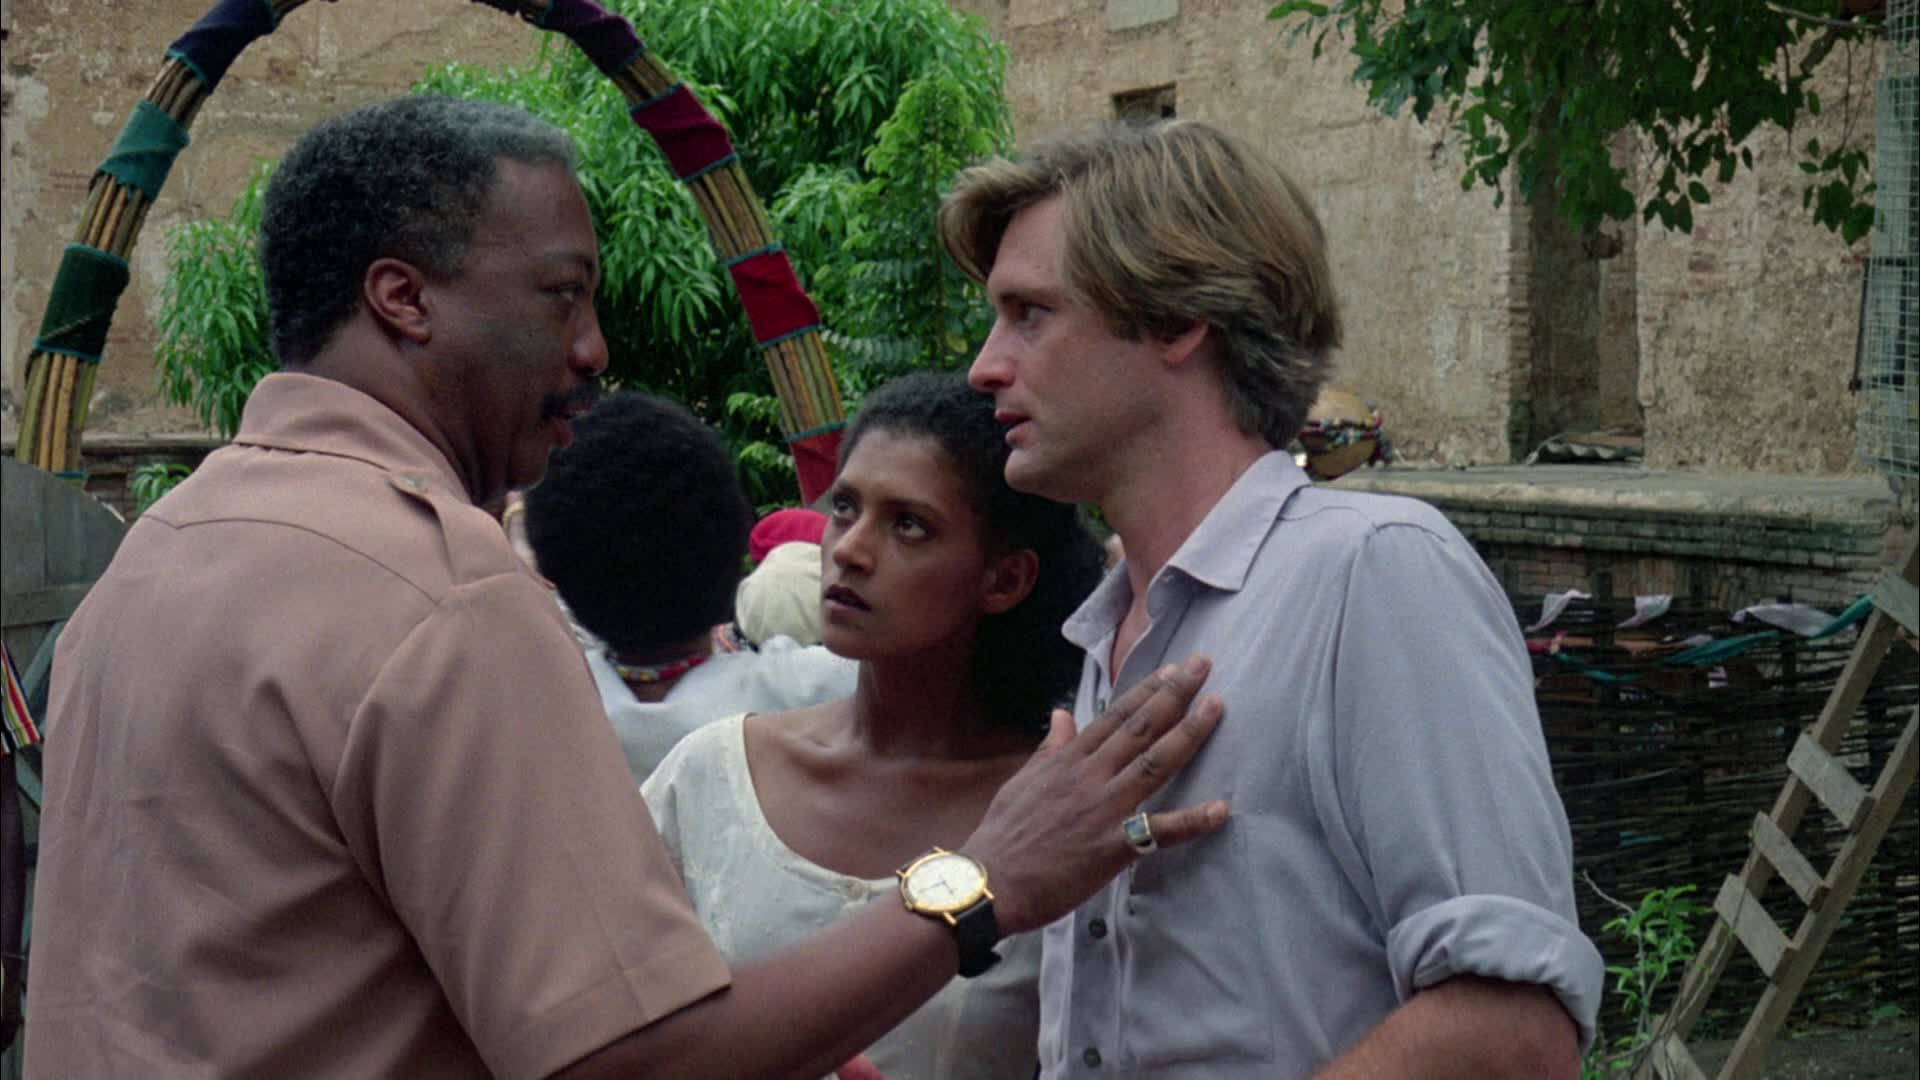 (l to r) Houngan Paul Winfield, doctor Cathy Tyson and with Bill Pullman as anthropologist Dennis Alan in The Serpent and the Rainbow (1988)